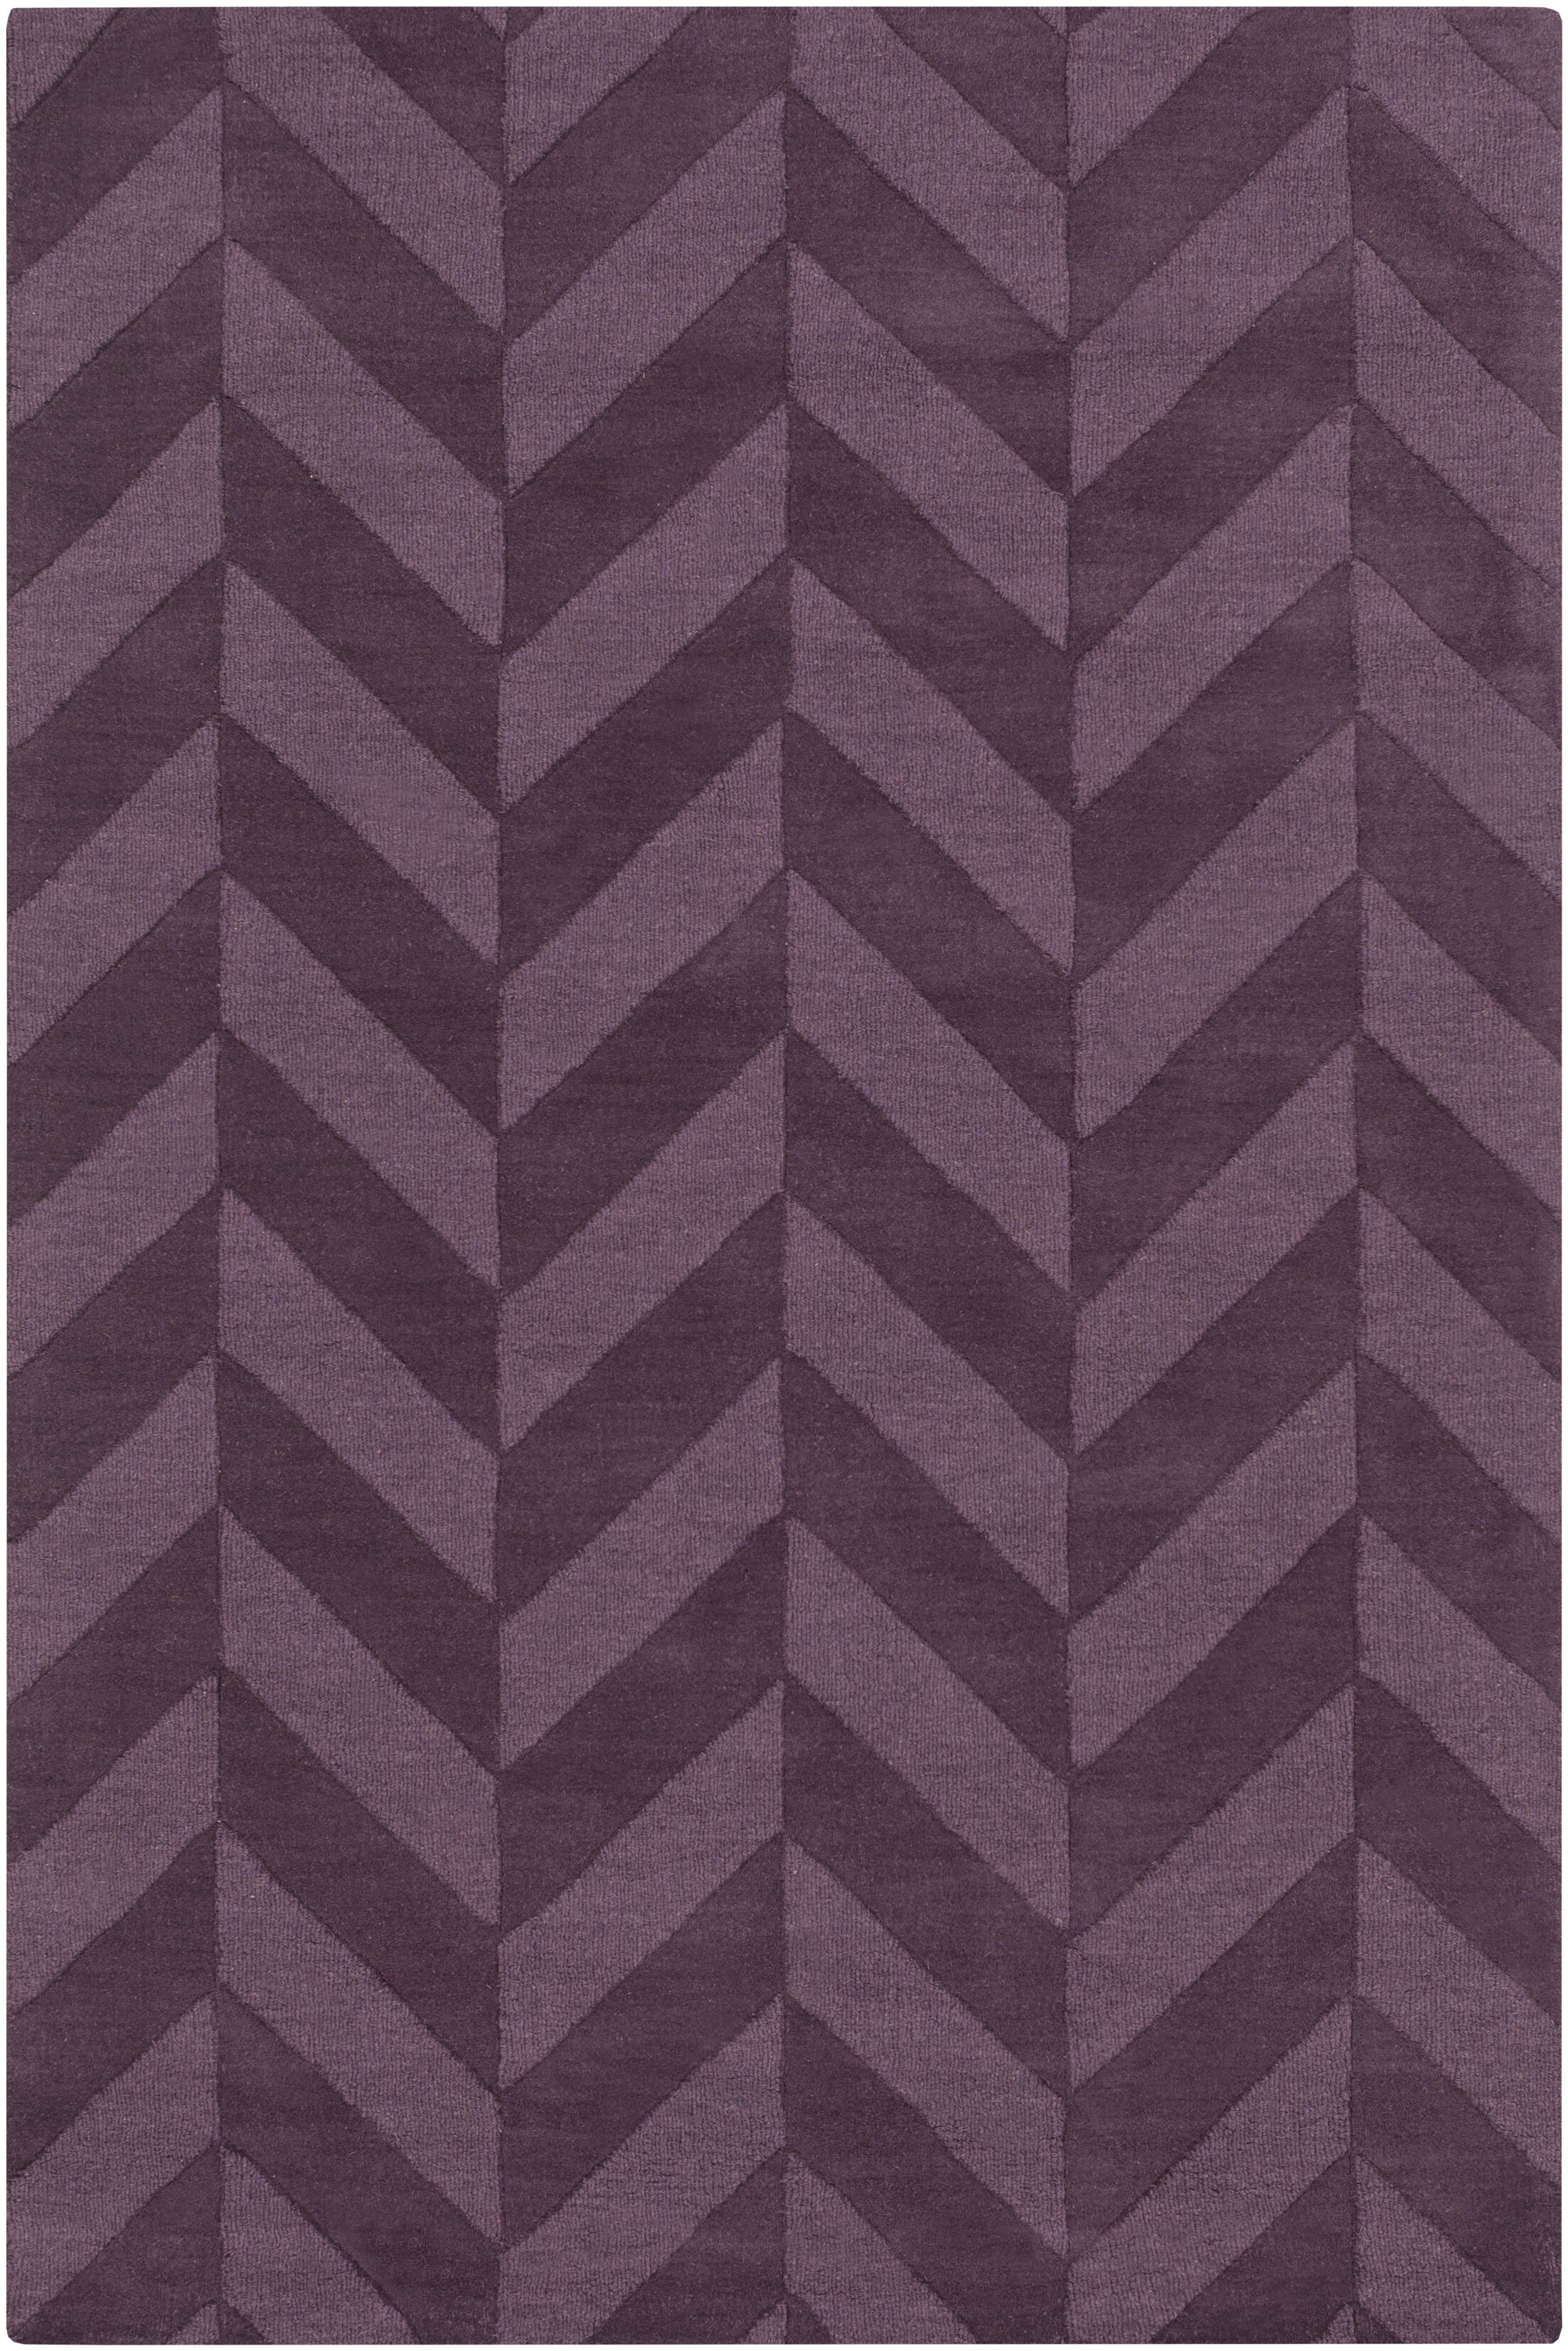 Sunburst Hand Woven Wool Purple Area Rug Rug Size: Rectangle 6' x 9'